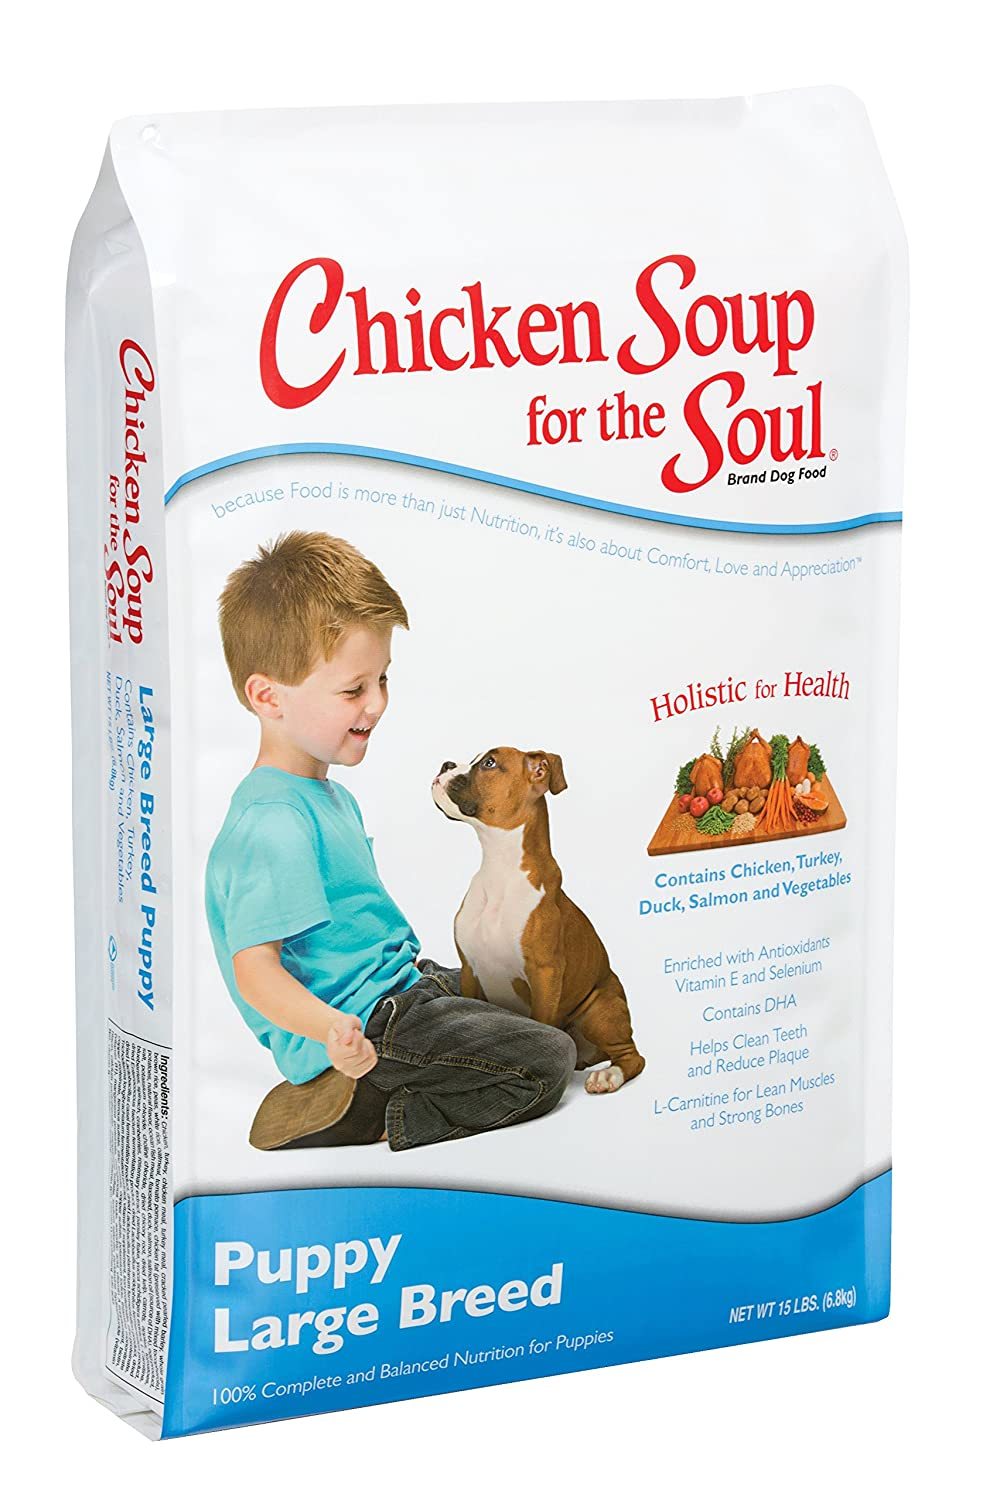 3.Chicken Soup for the Soul Large Breed